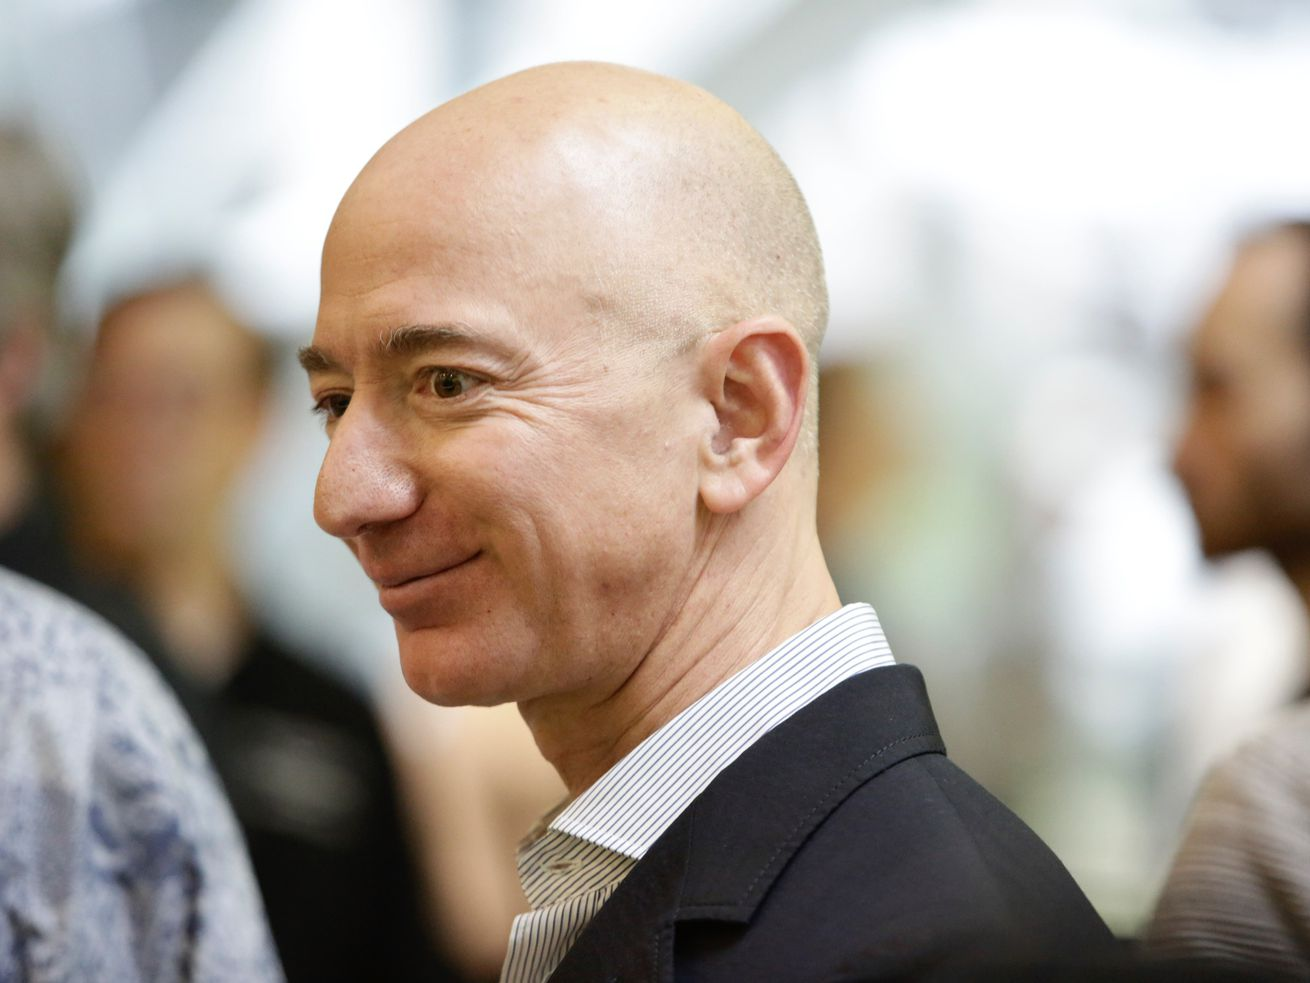 Recode Daily: Amazon finally delivers an actual number of Prime subscribers. (It's 100 million.)